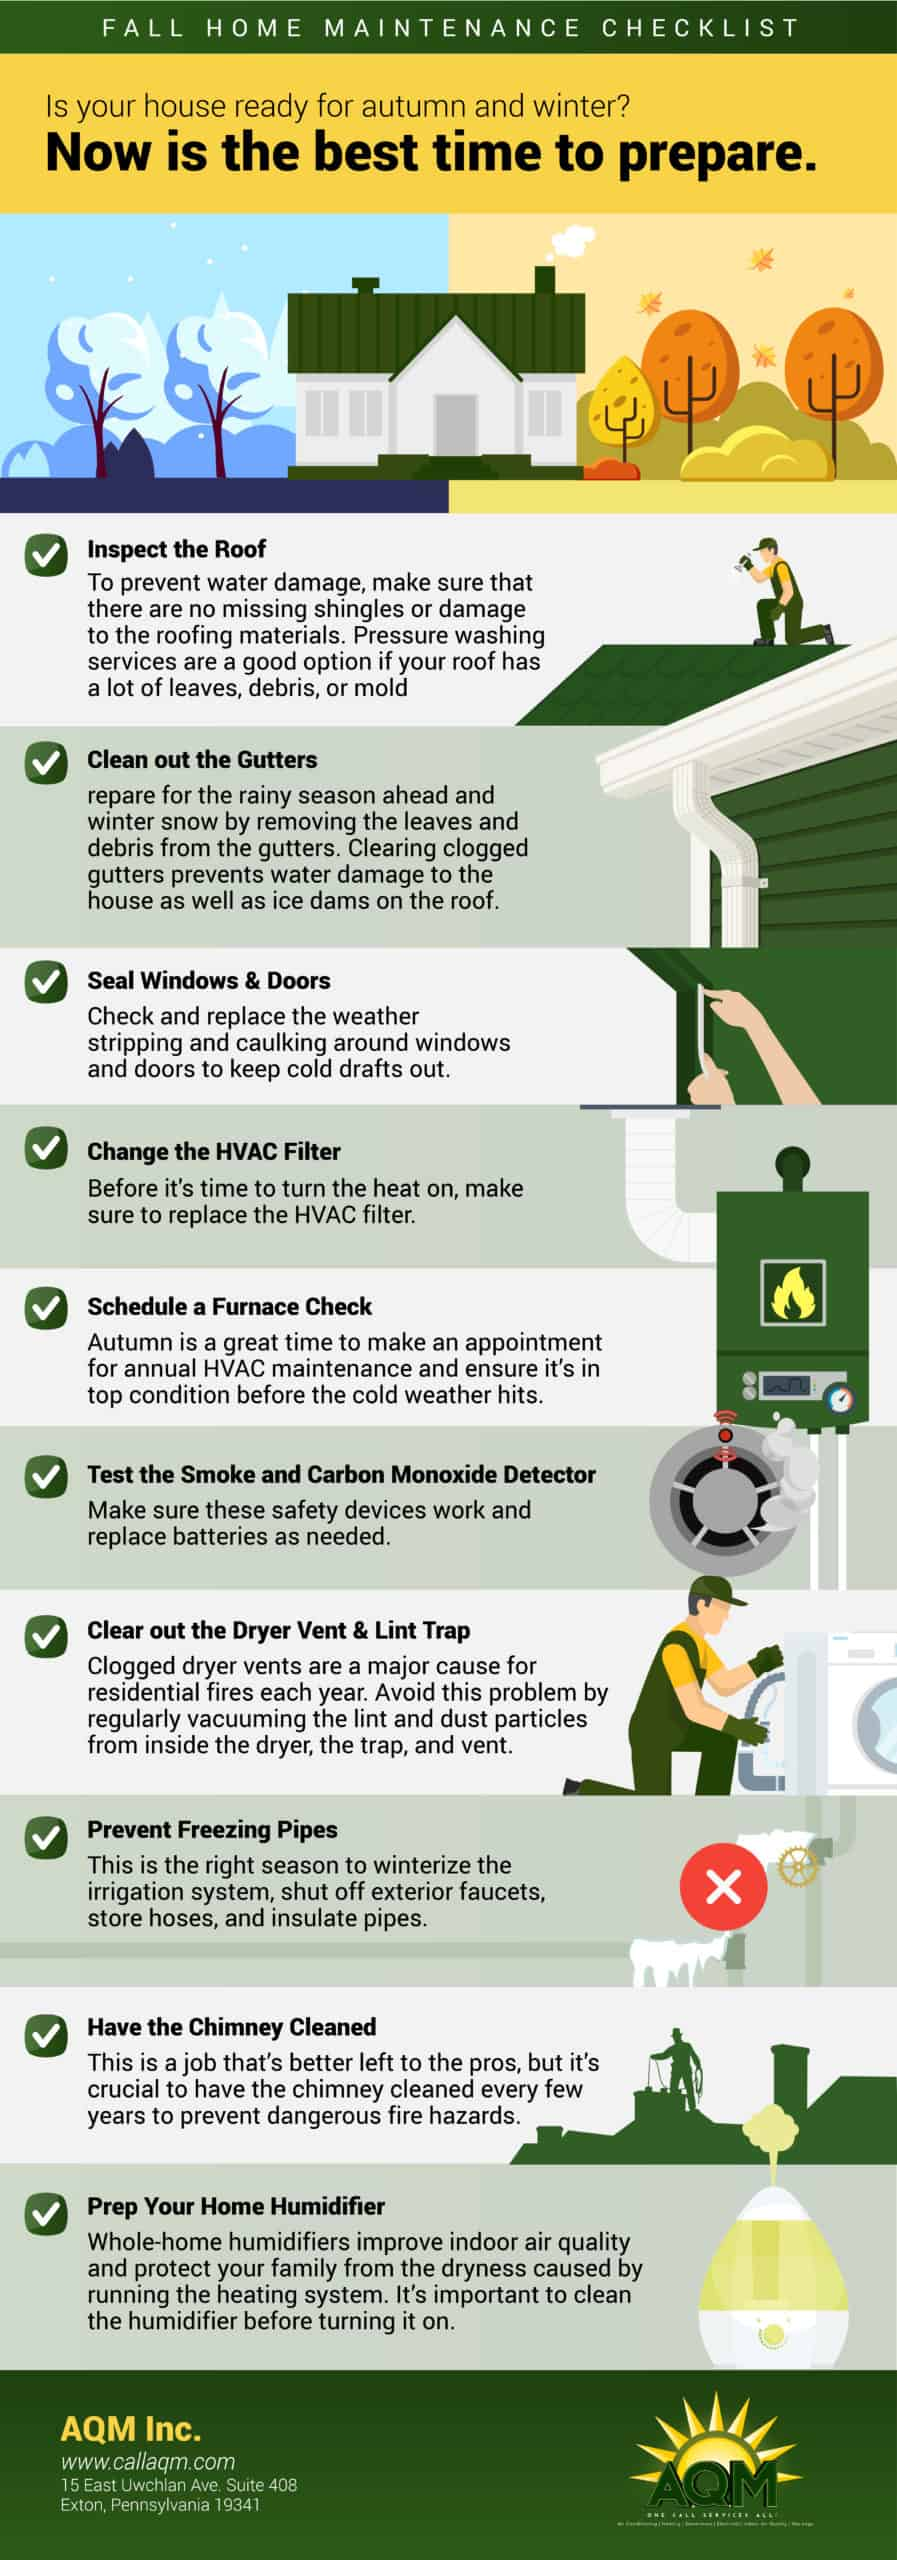 Illustrated checklist of fall home maintenance projects